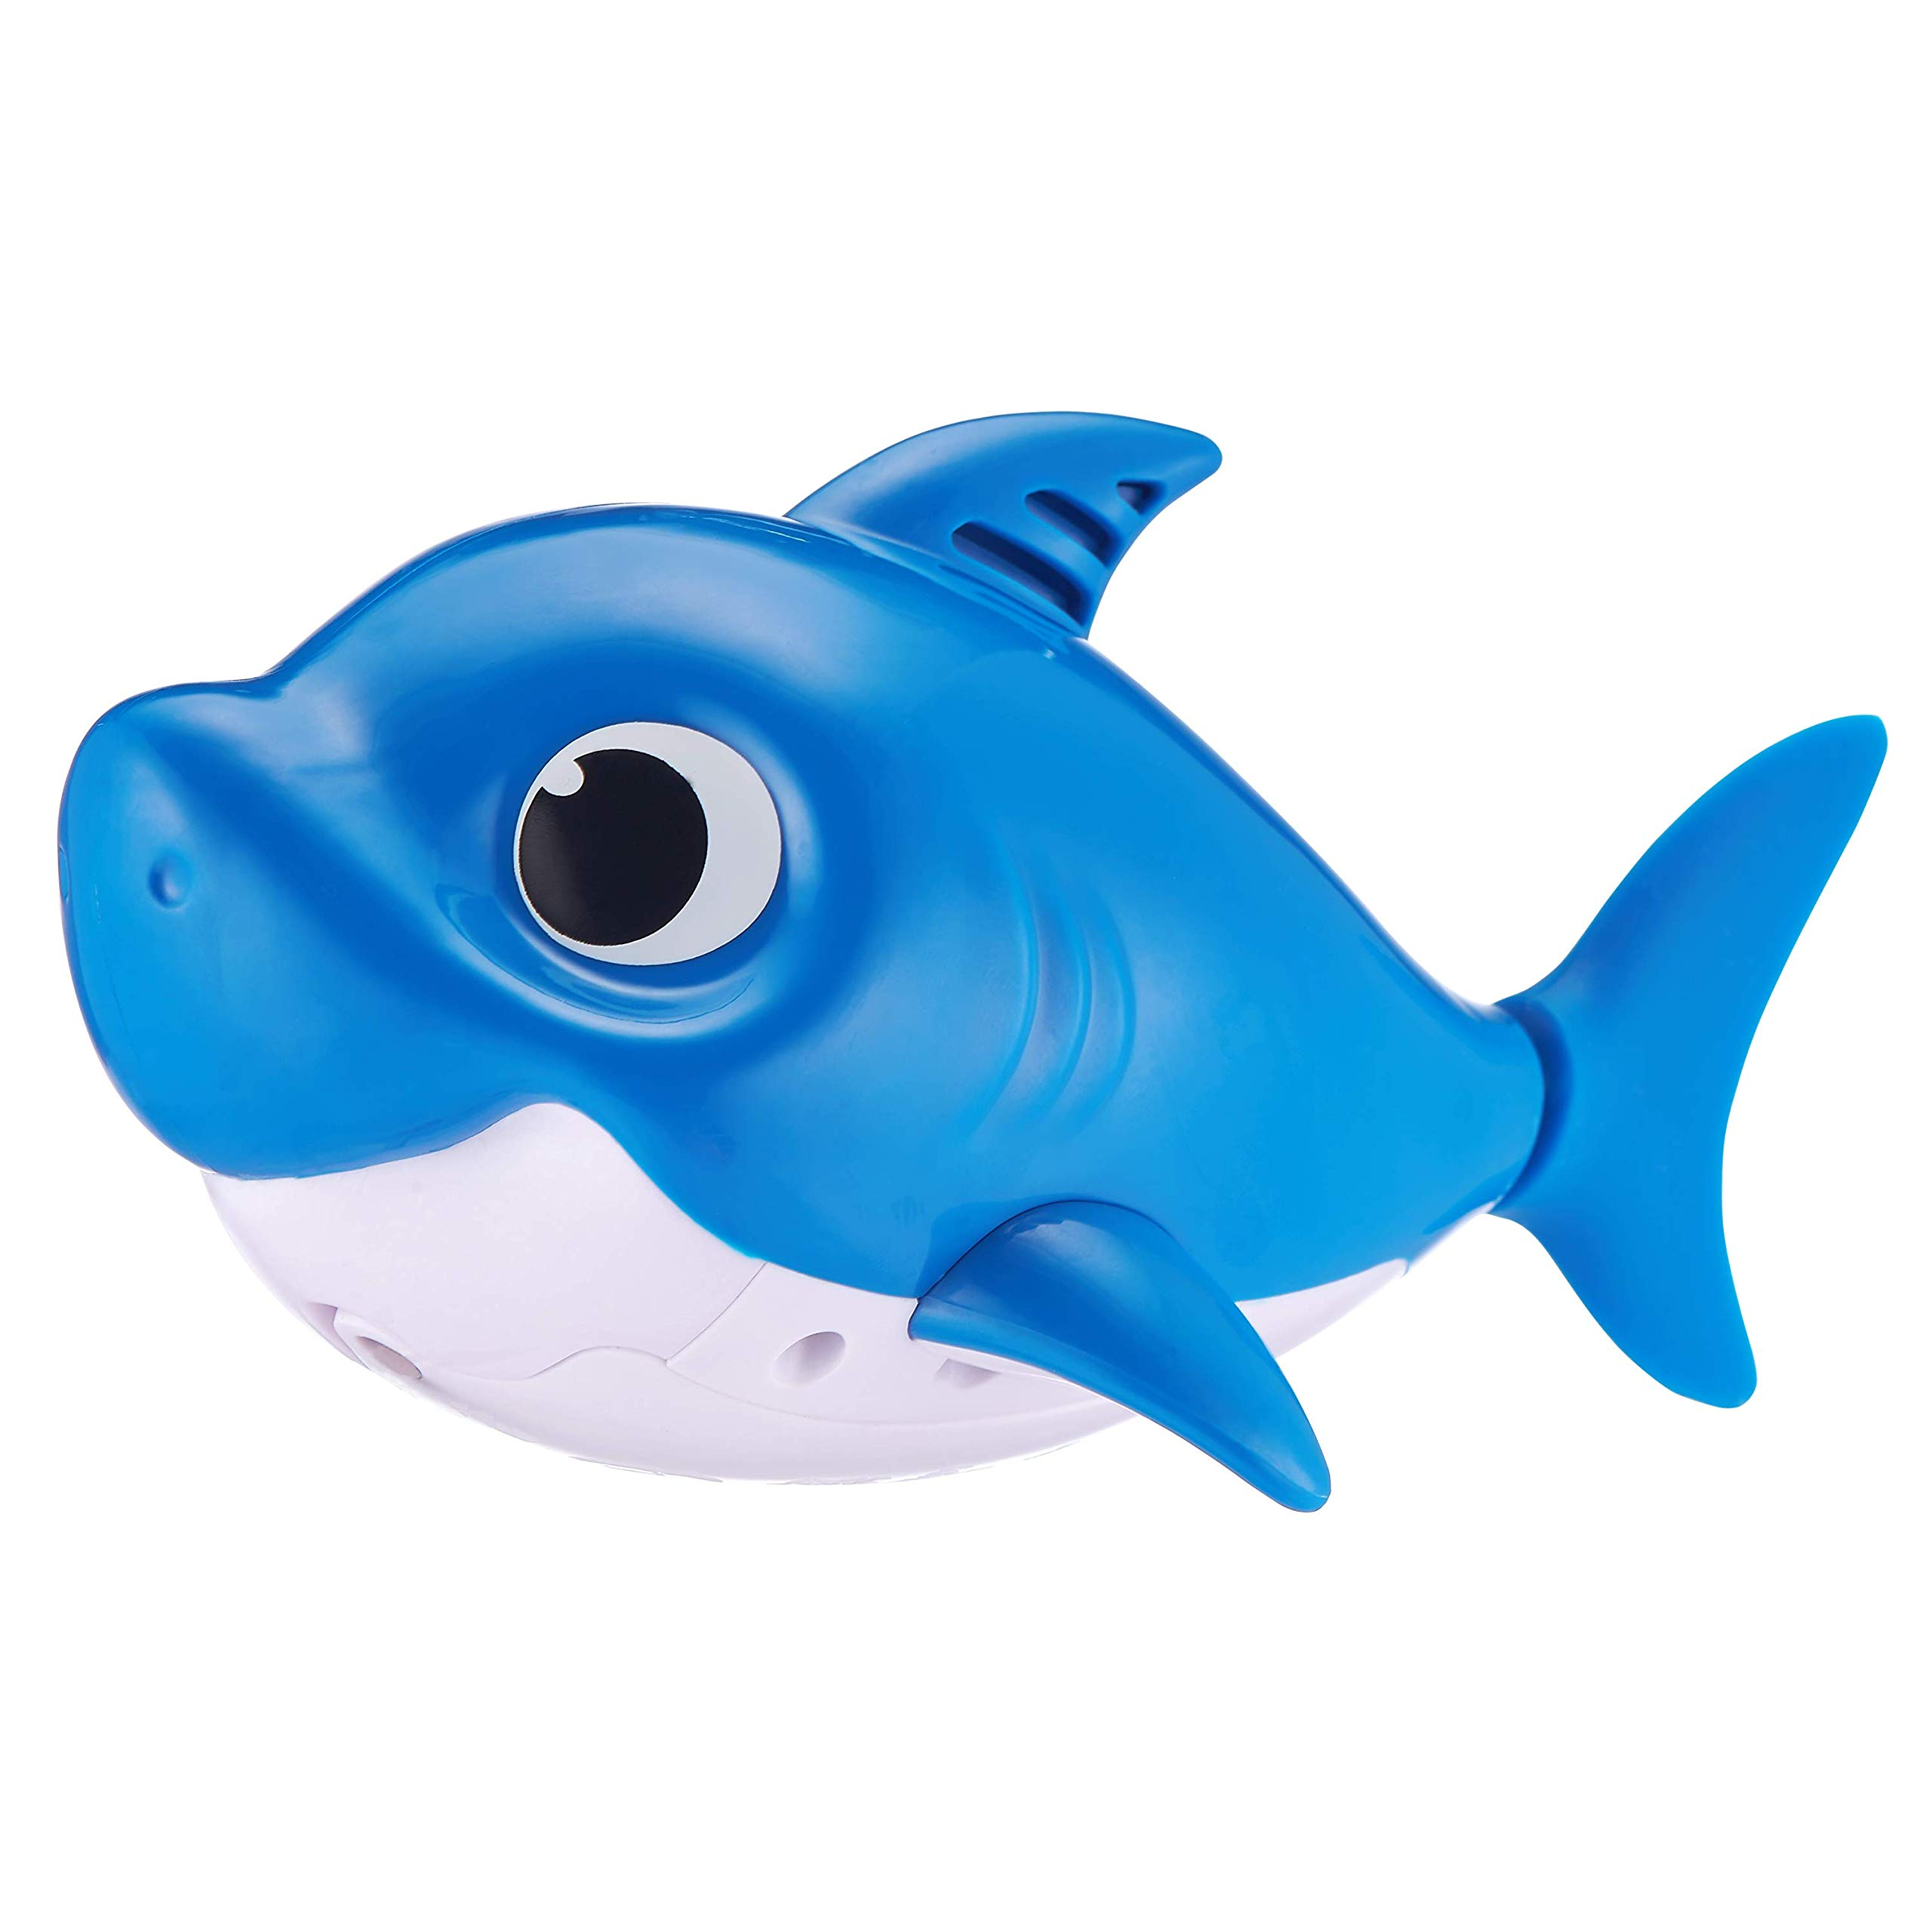 Robo Alive Junior Baby Shark Battery-Powered Sing and Swim Bath Toy by ZURU - Daddy Shark (Blue) by Robo Alive Junior (Image #3)